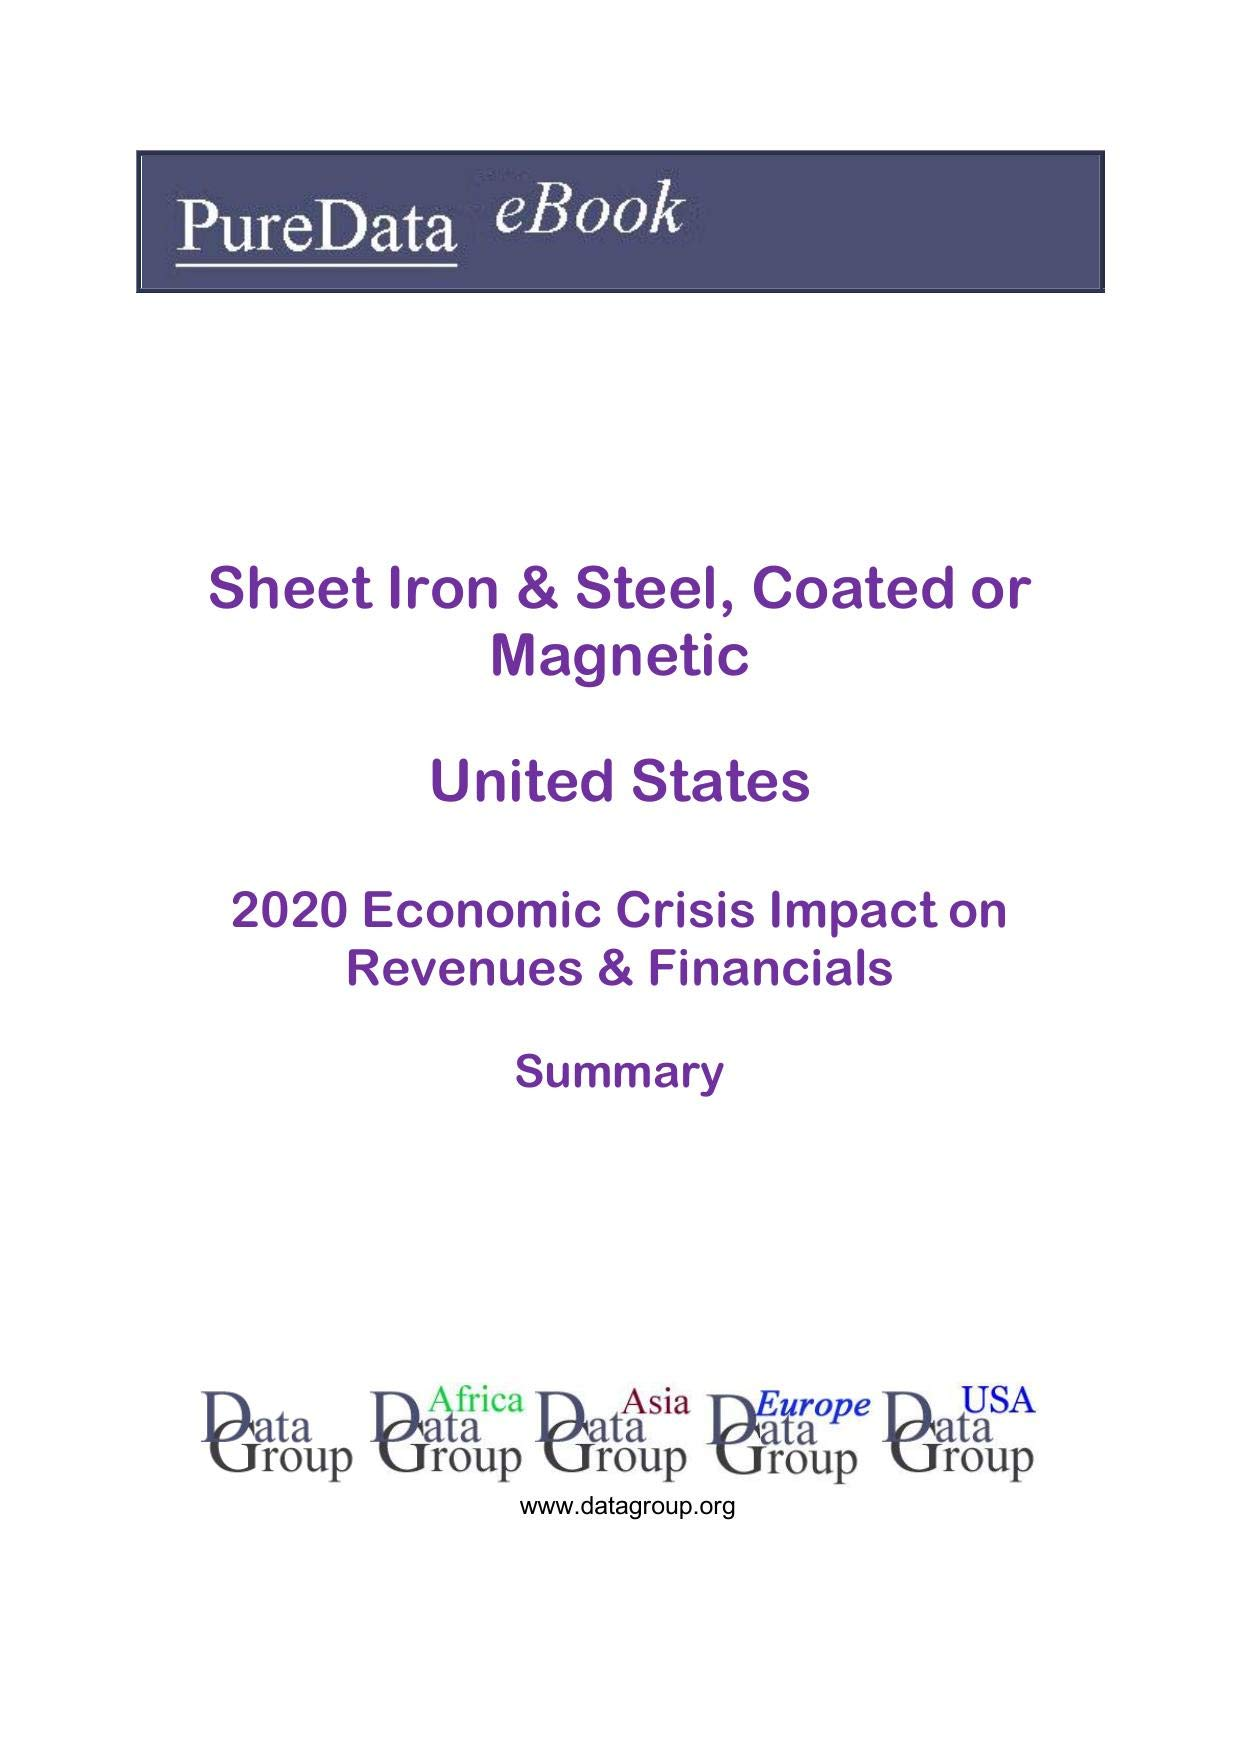 Sheet Iron & Steel, Coated or Magnetic United States Summary: 2020 Economic Crisis Impact on Revenues & Financials